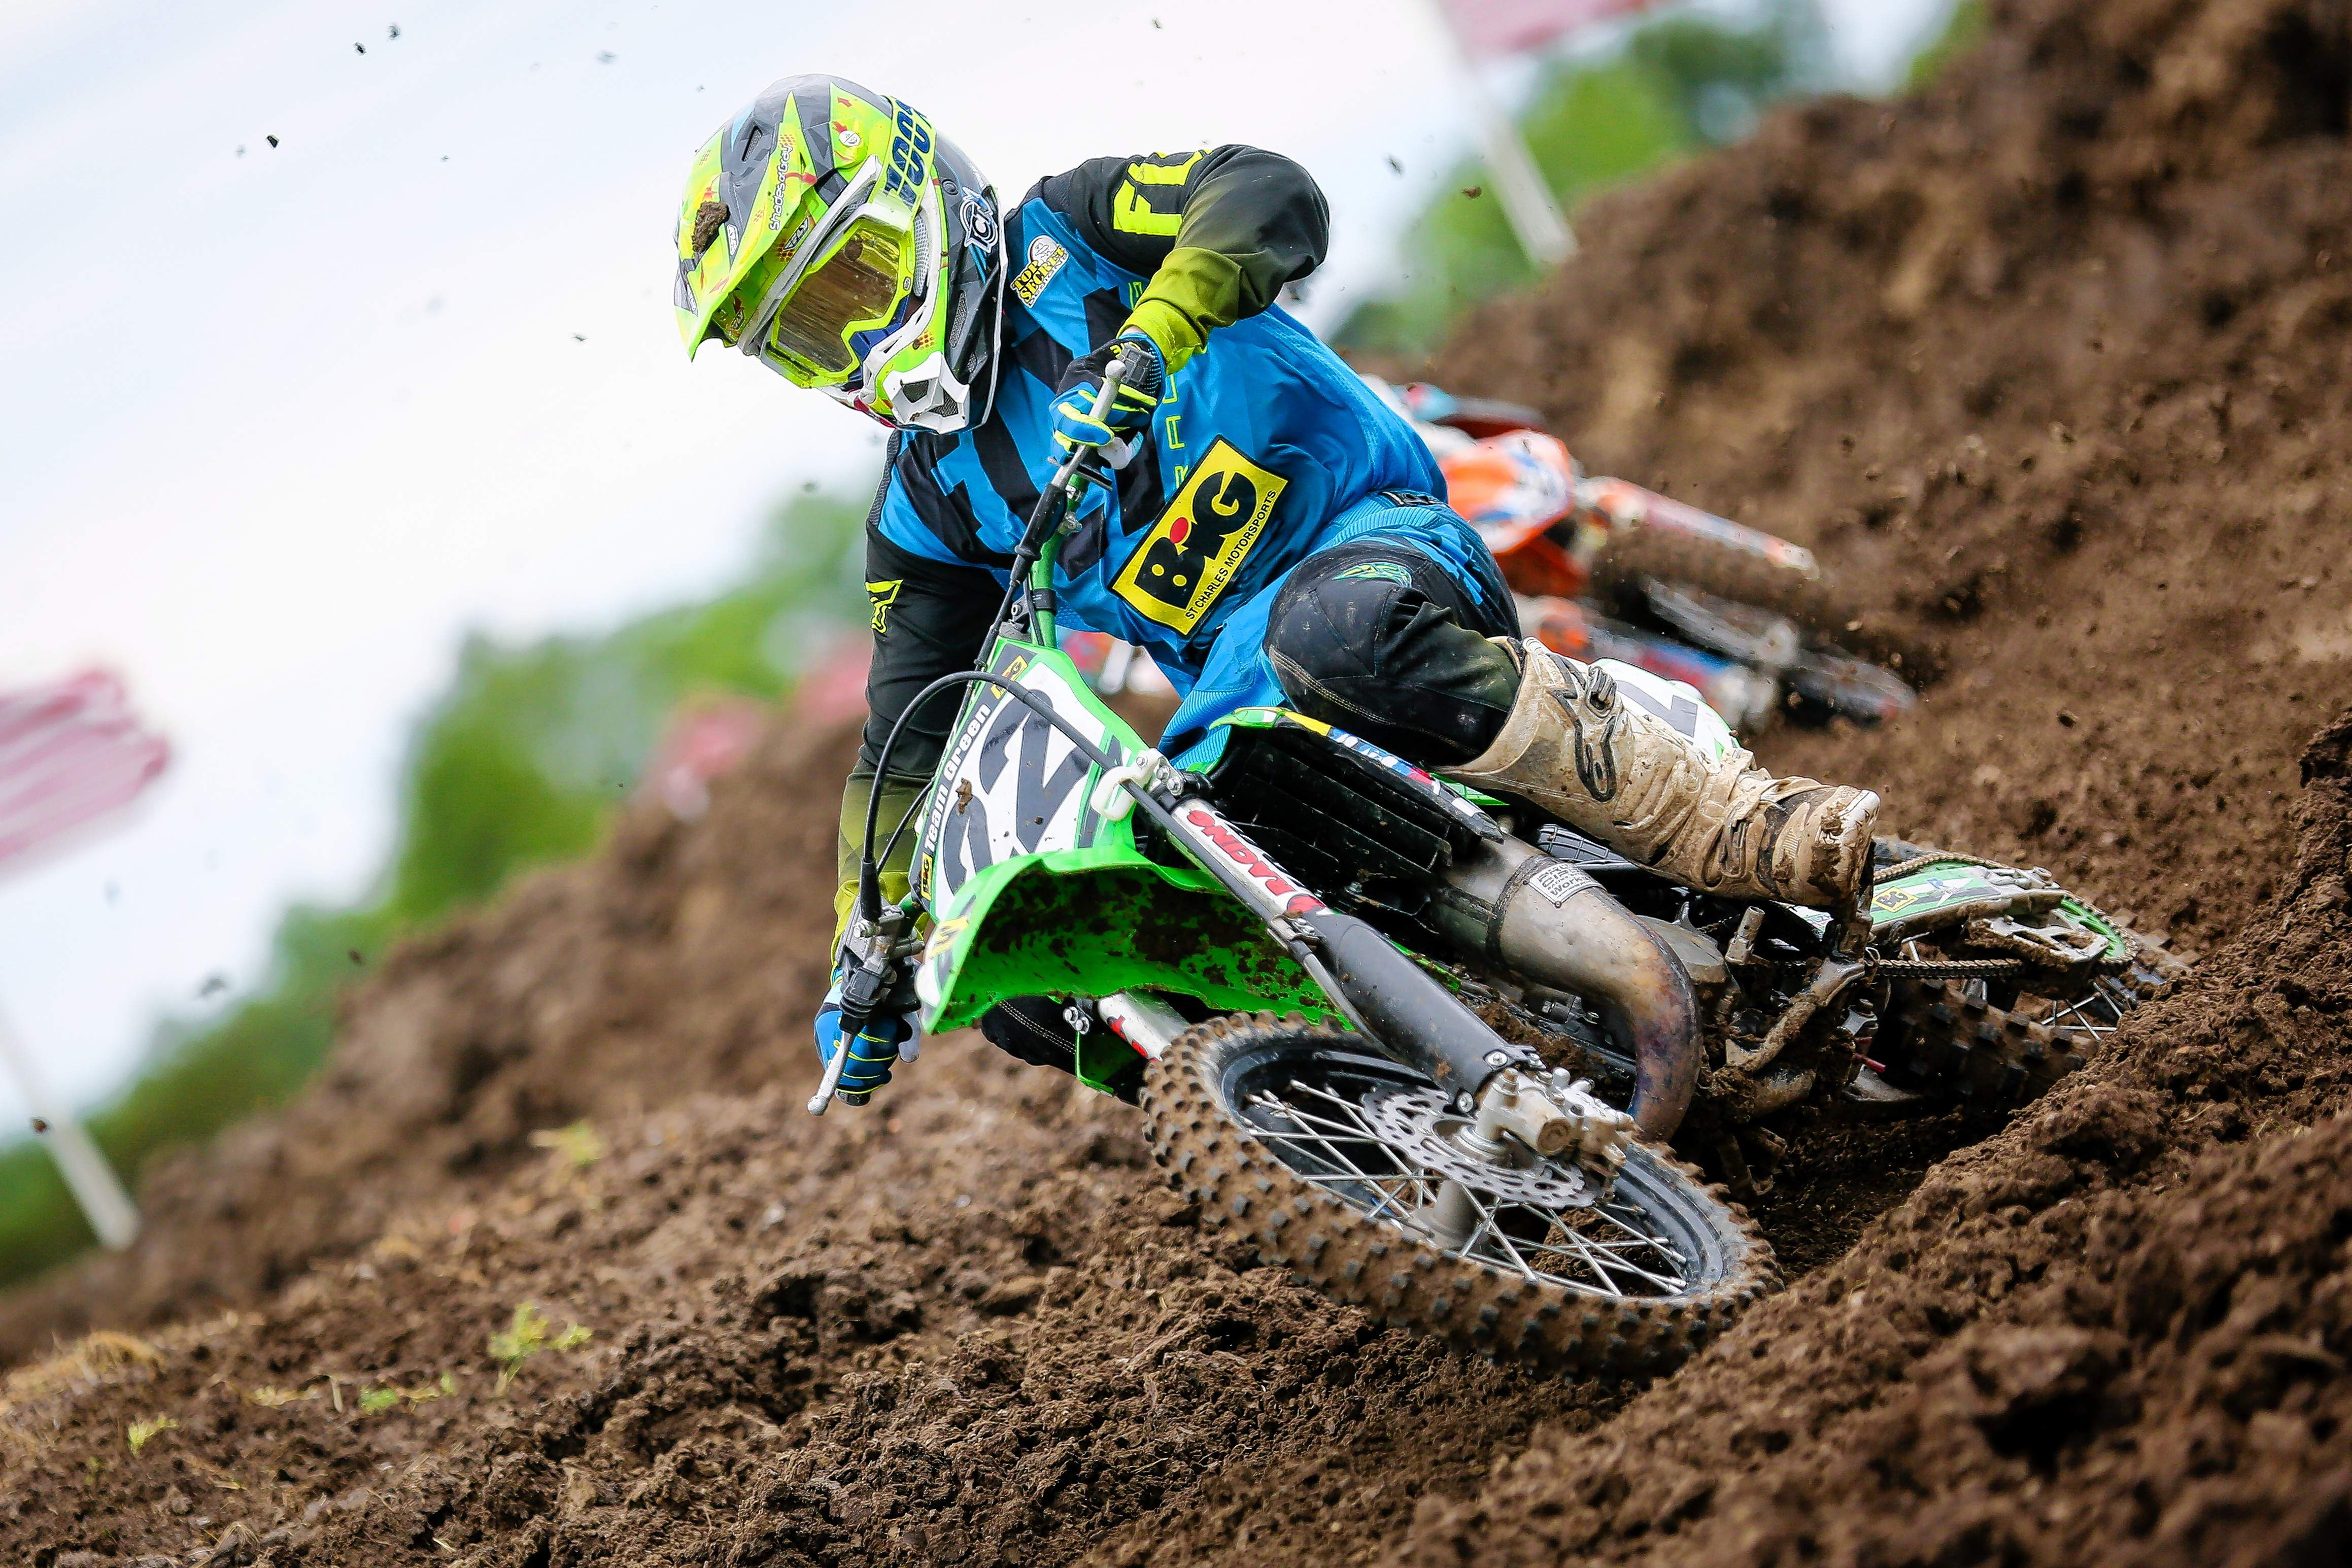 Colin Marler of Caseyville scored a couple podium finishes last year in his classes (Mini Sr. 2 (12-14) and Supermini 2 (13-16) at Indian Hills MX in Du Quoin.